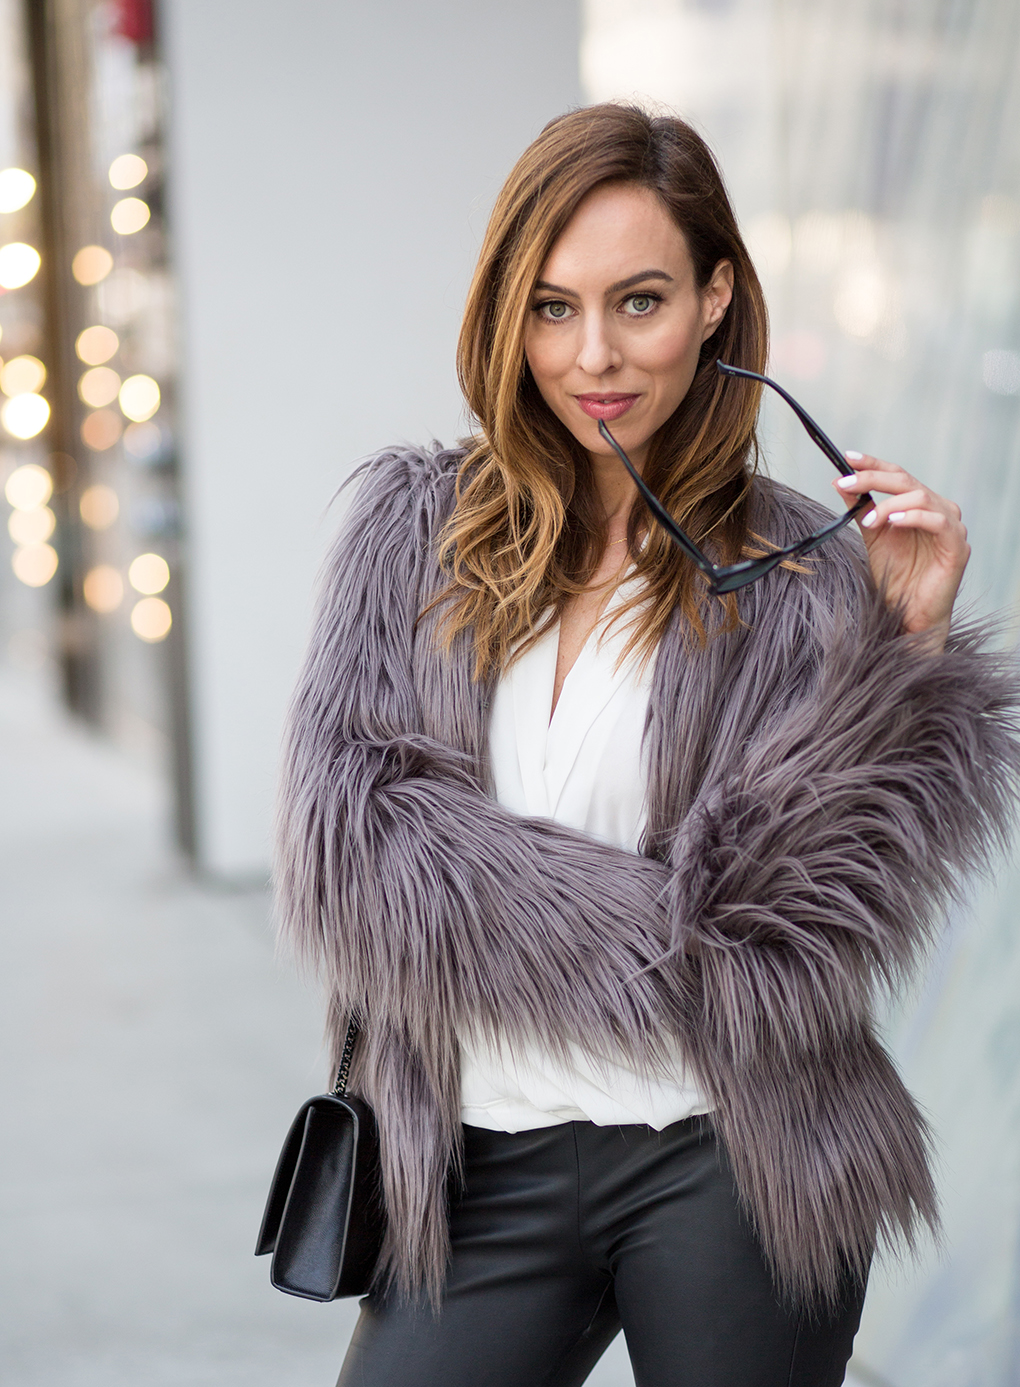 Sydne Style shows what to wear with a fur coat for holiday party style